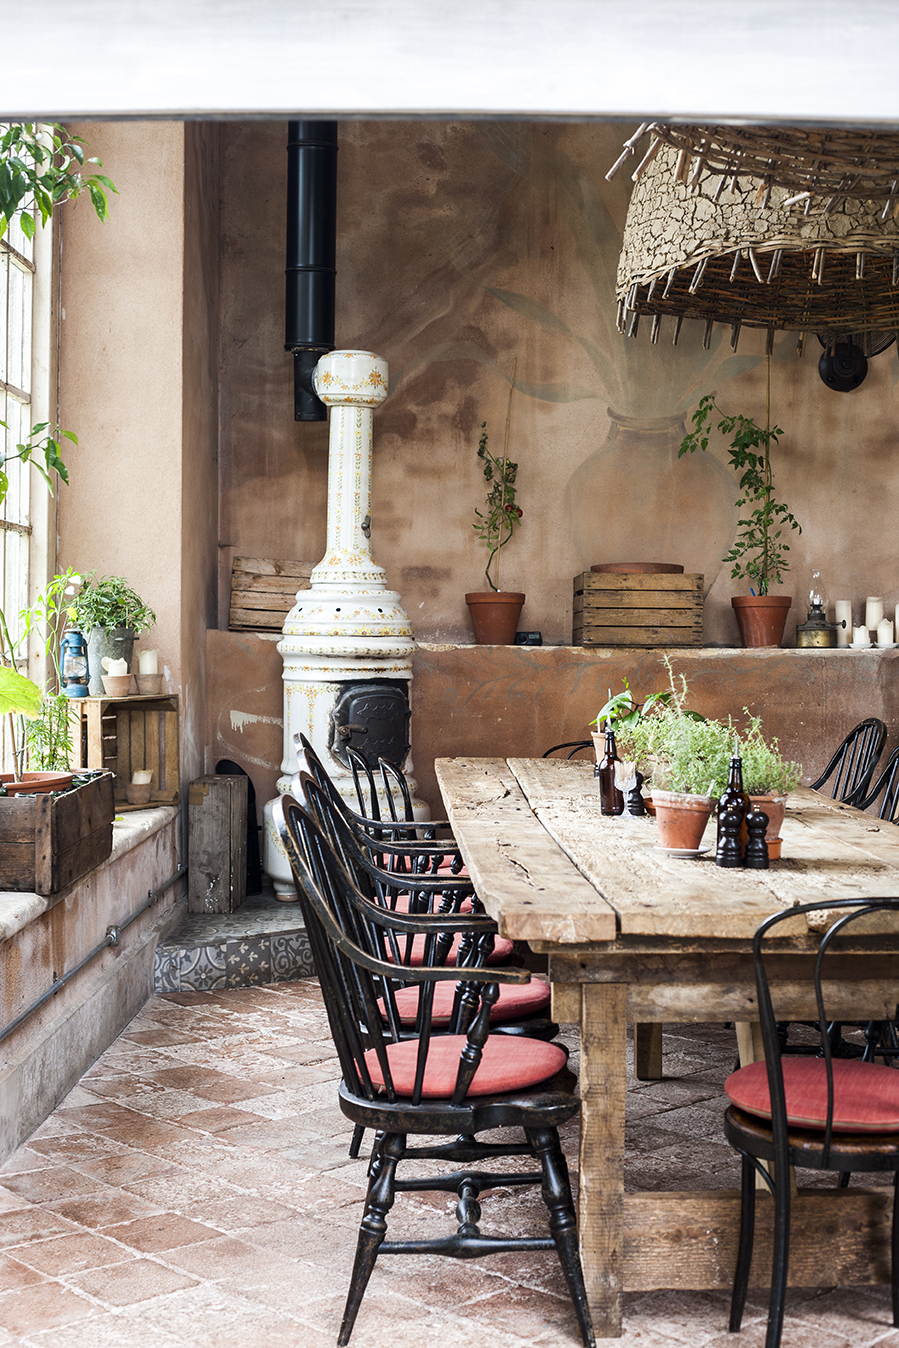 Rustic charm in the Folly